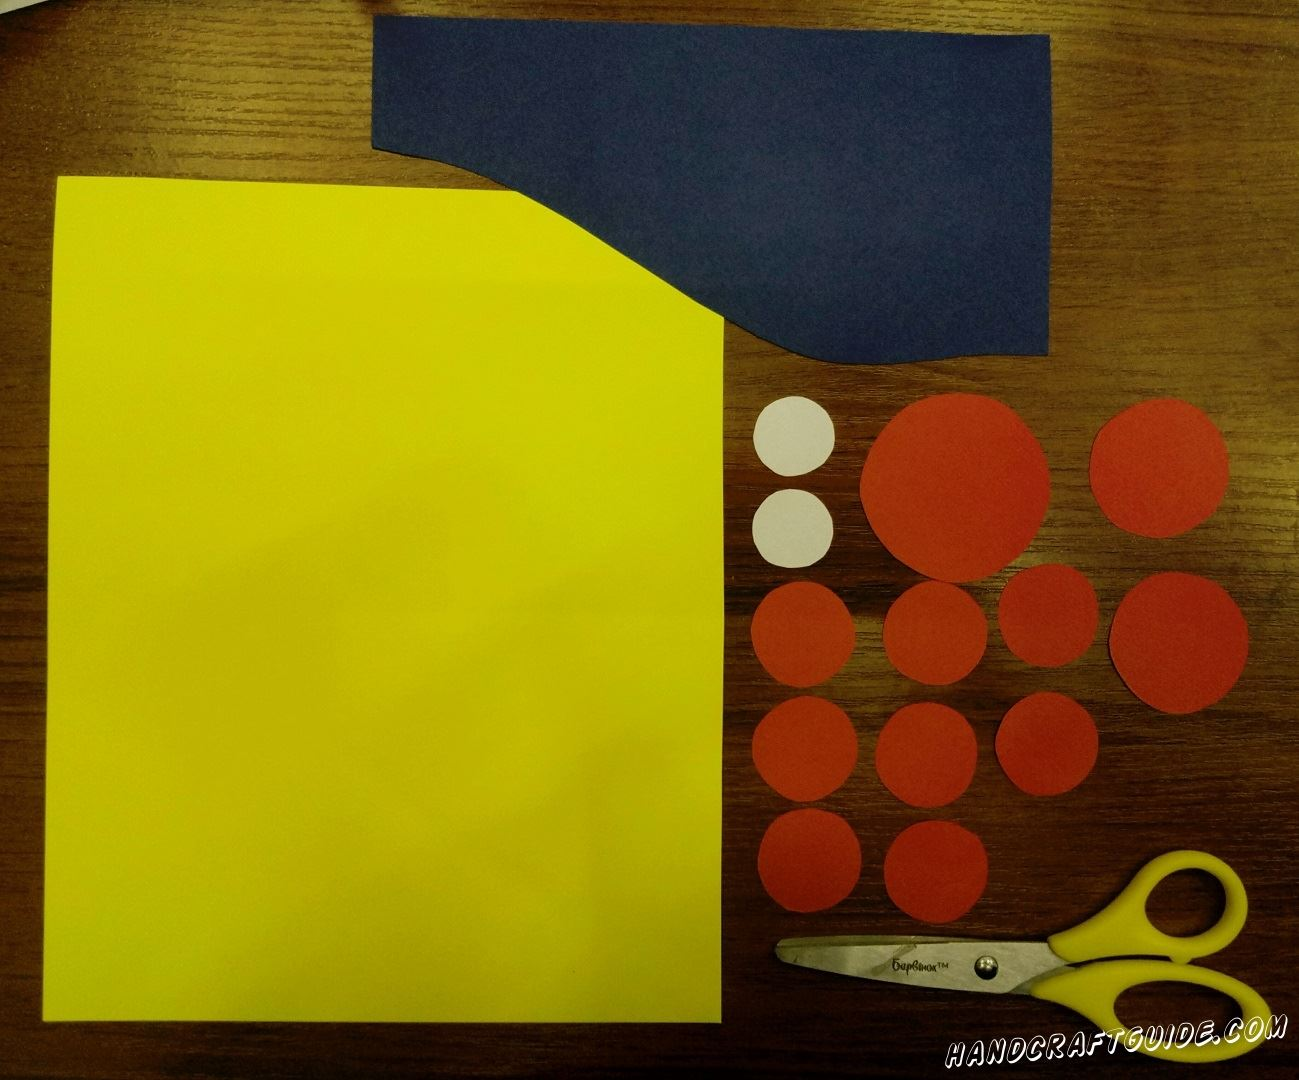 First, take blue paper and cut out a rectangle with one side wavy like a hill. From red paper cut out 1 big circle, 2 slightly smaller, and 8 small. Take white paper and cut out 2 very small circles. And the yellow sheet of paper we will use as a background.